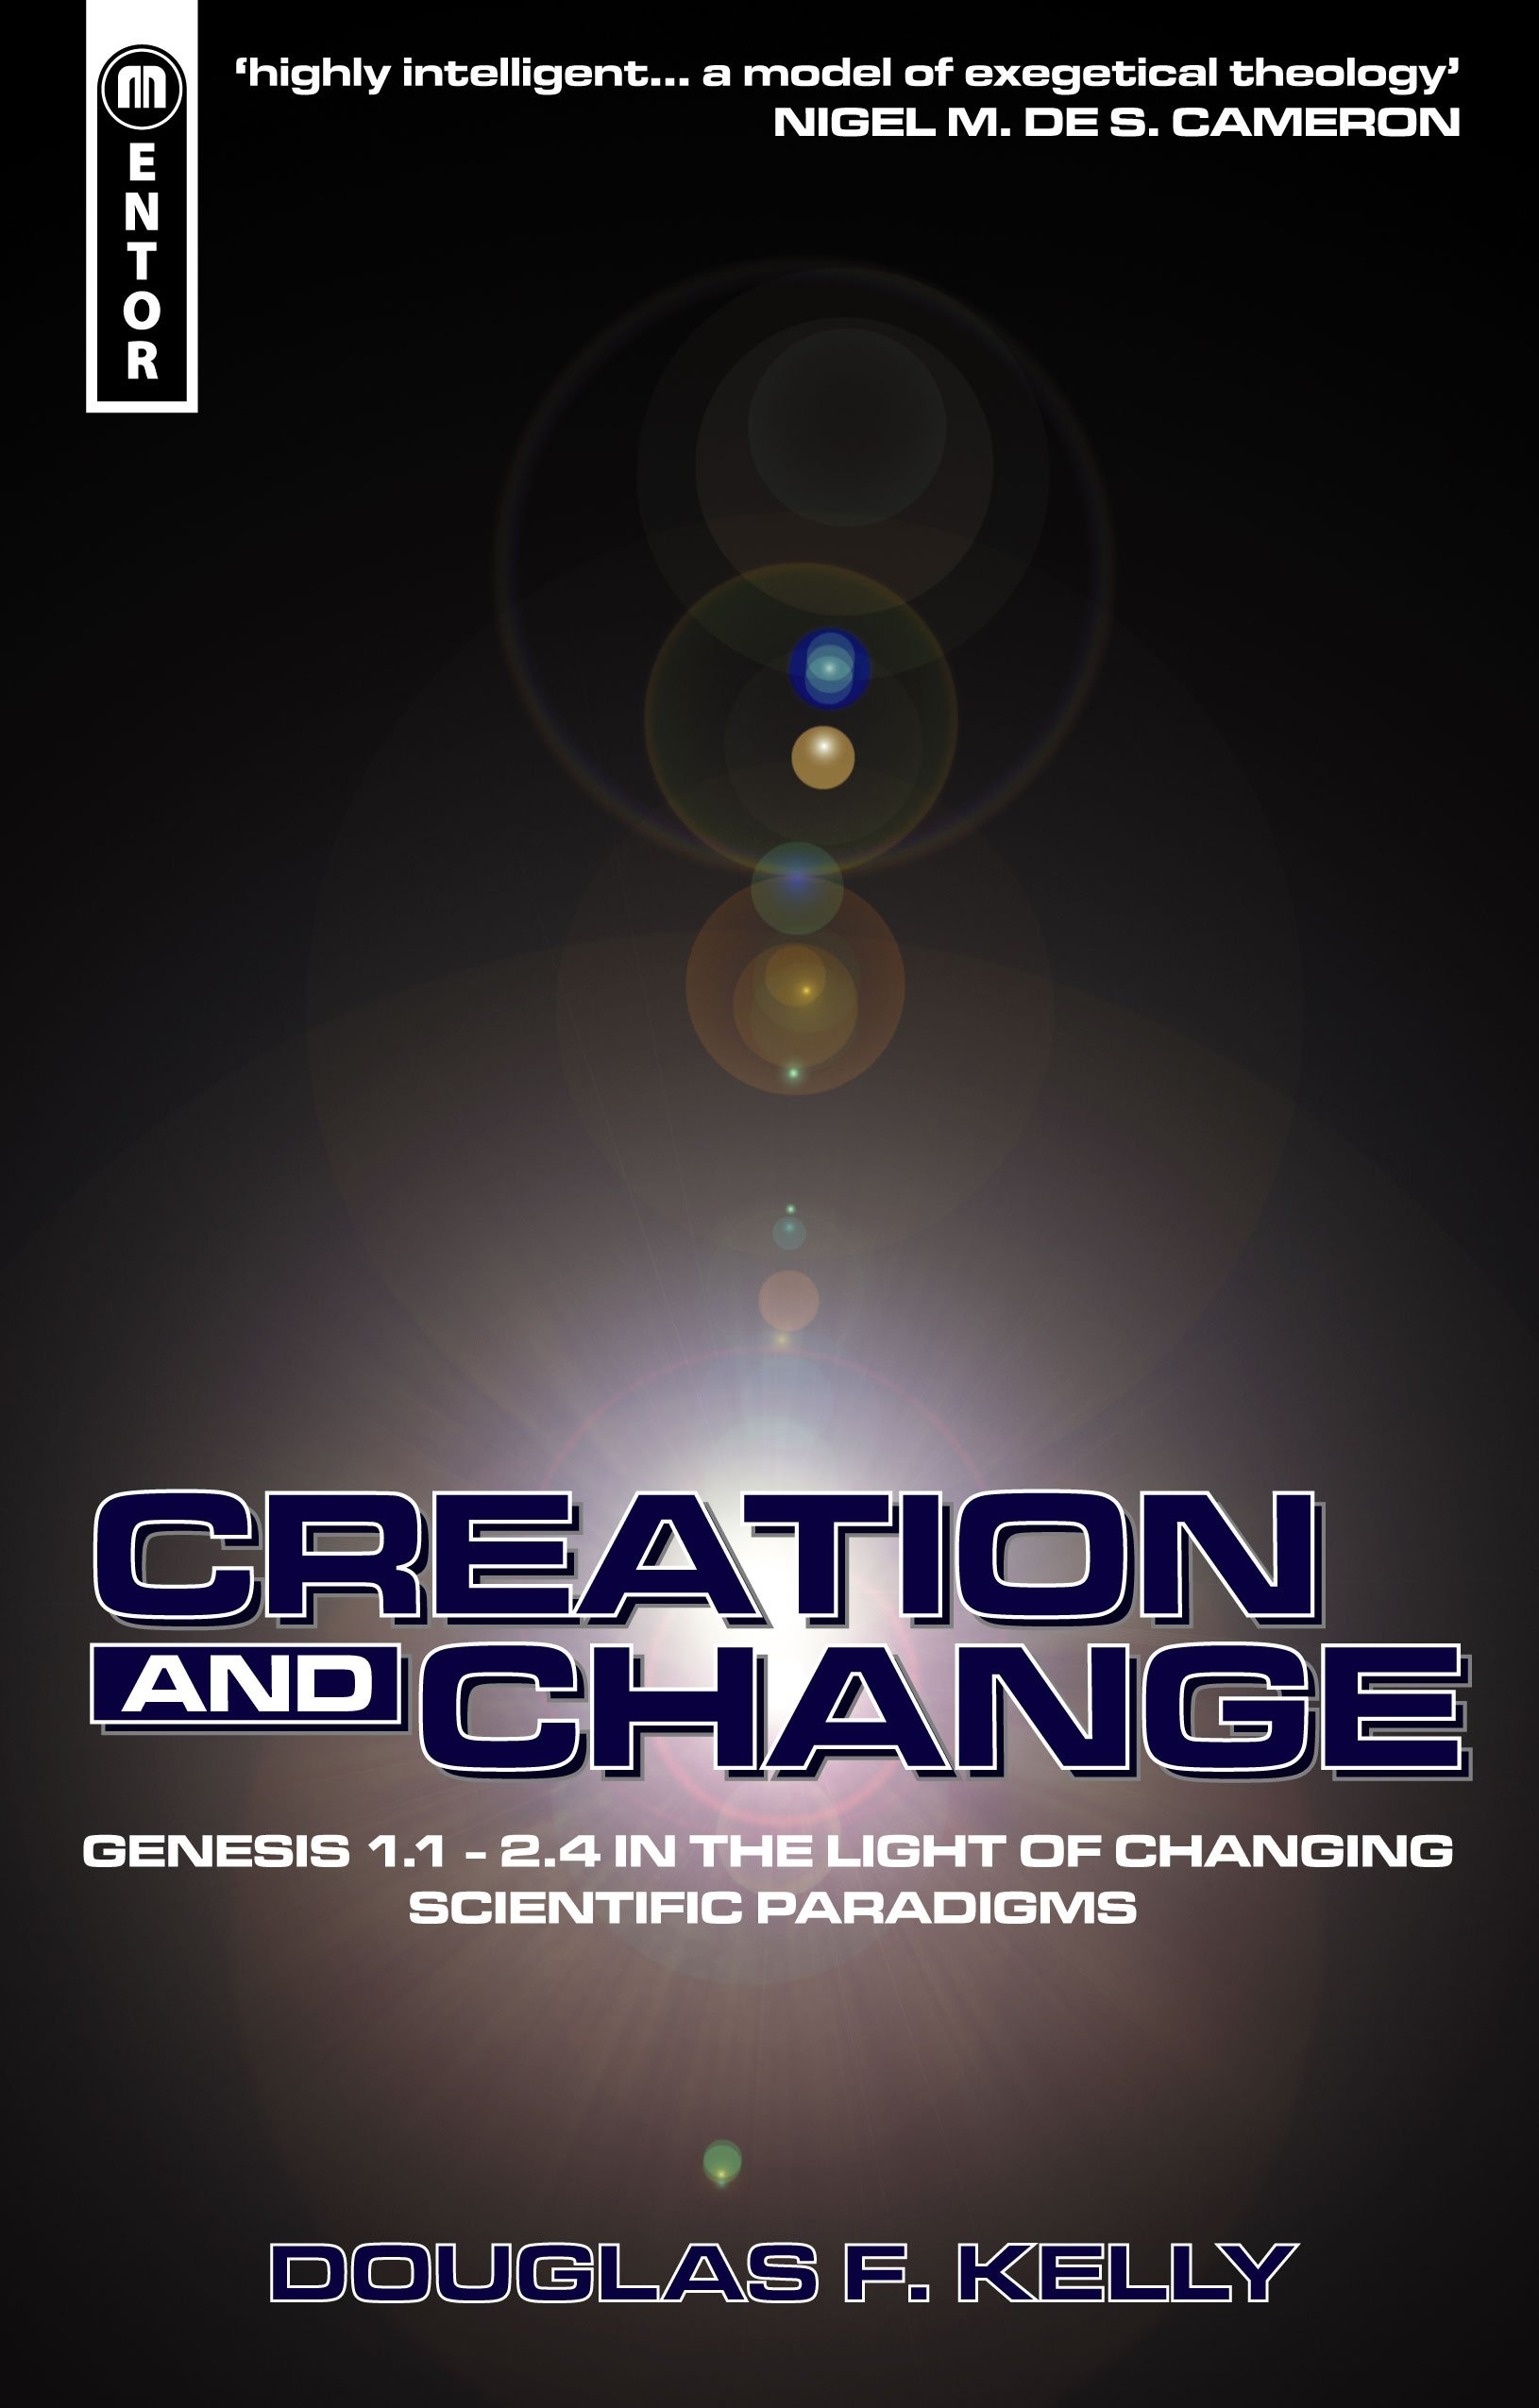 Read Online Creation And Change: Genesis 1.1 - 2.4 in the Light of Changing Scientific Paradigms PDF